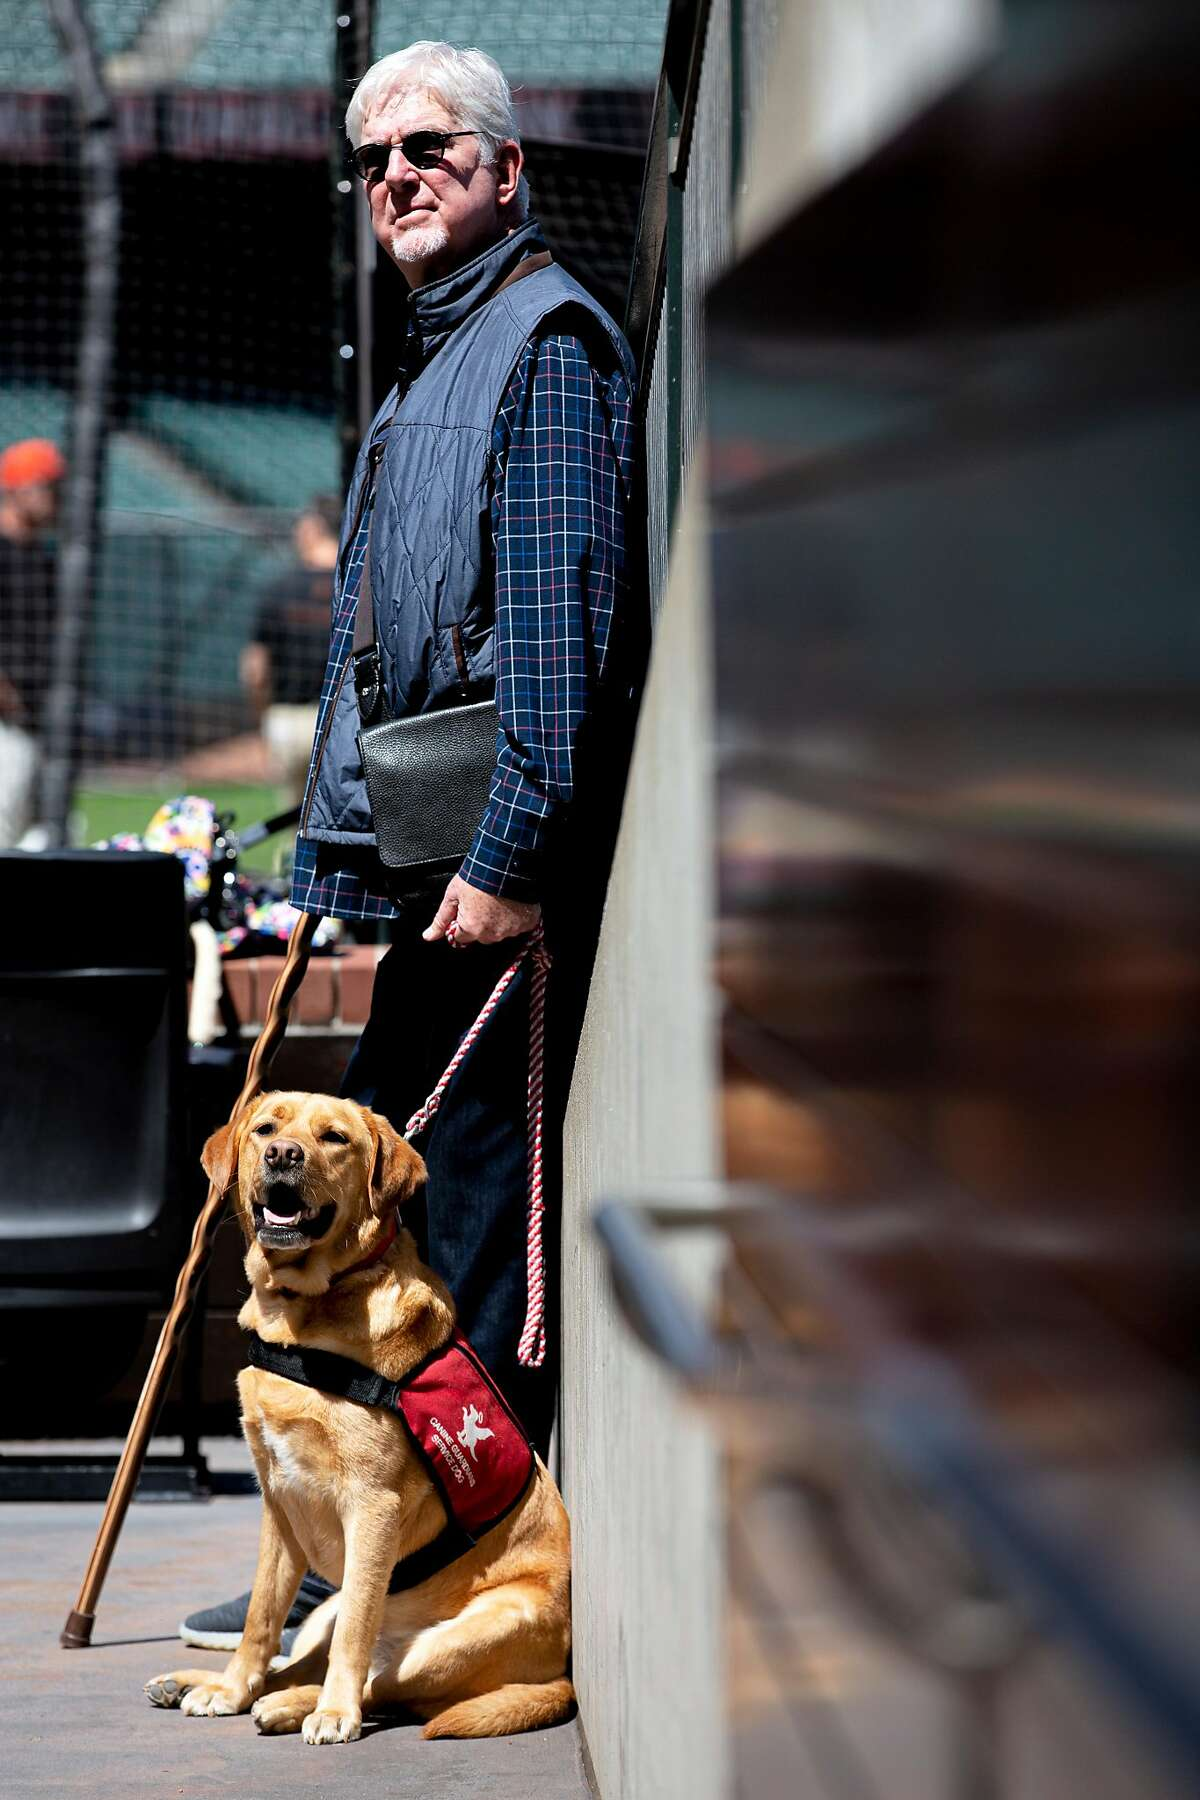 Giants broadcaster Mike Krukow and his service dog Patriot at Oracle Park.